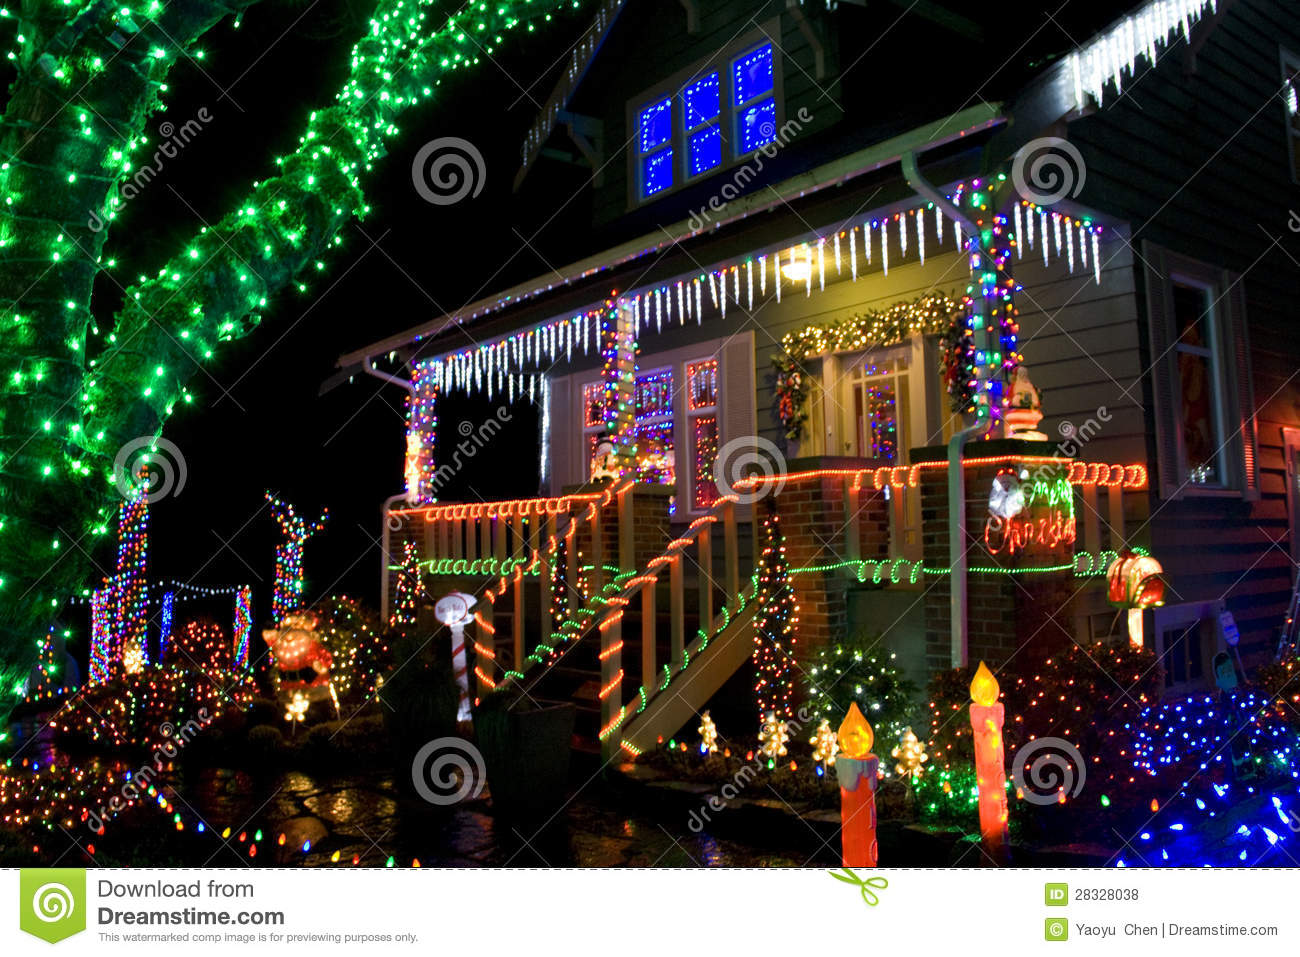 House With Christmas Lights.House With Christmas Lights Stock Photo Image Of Blue